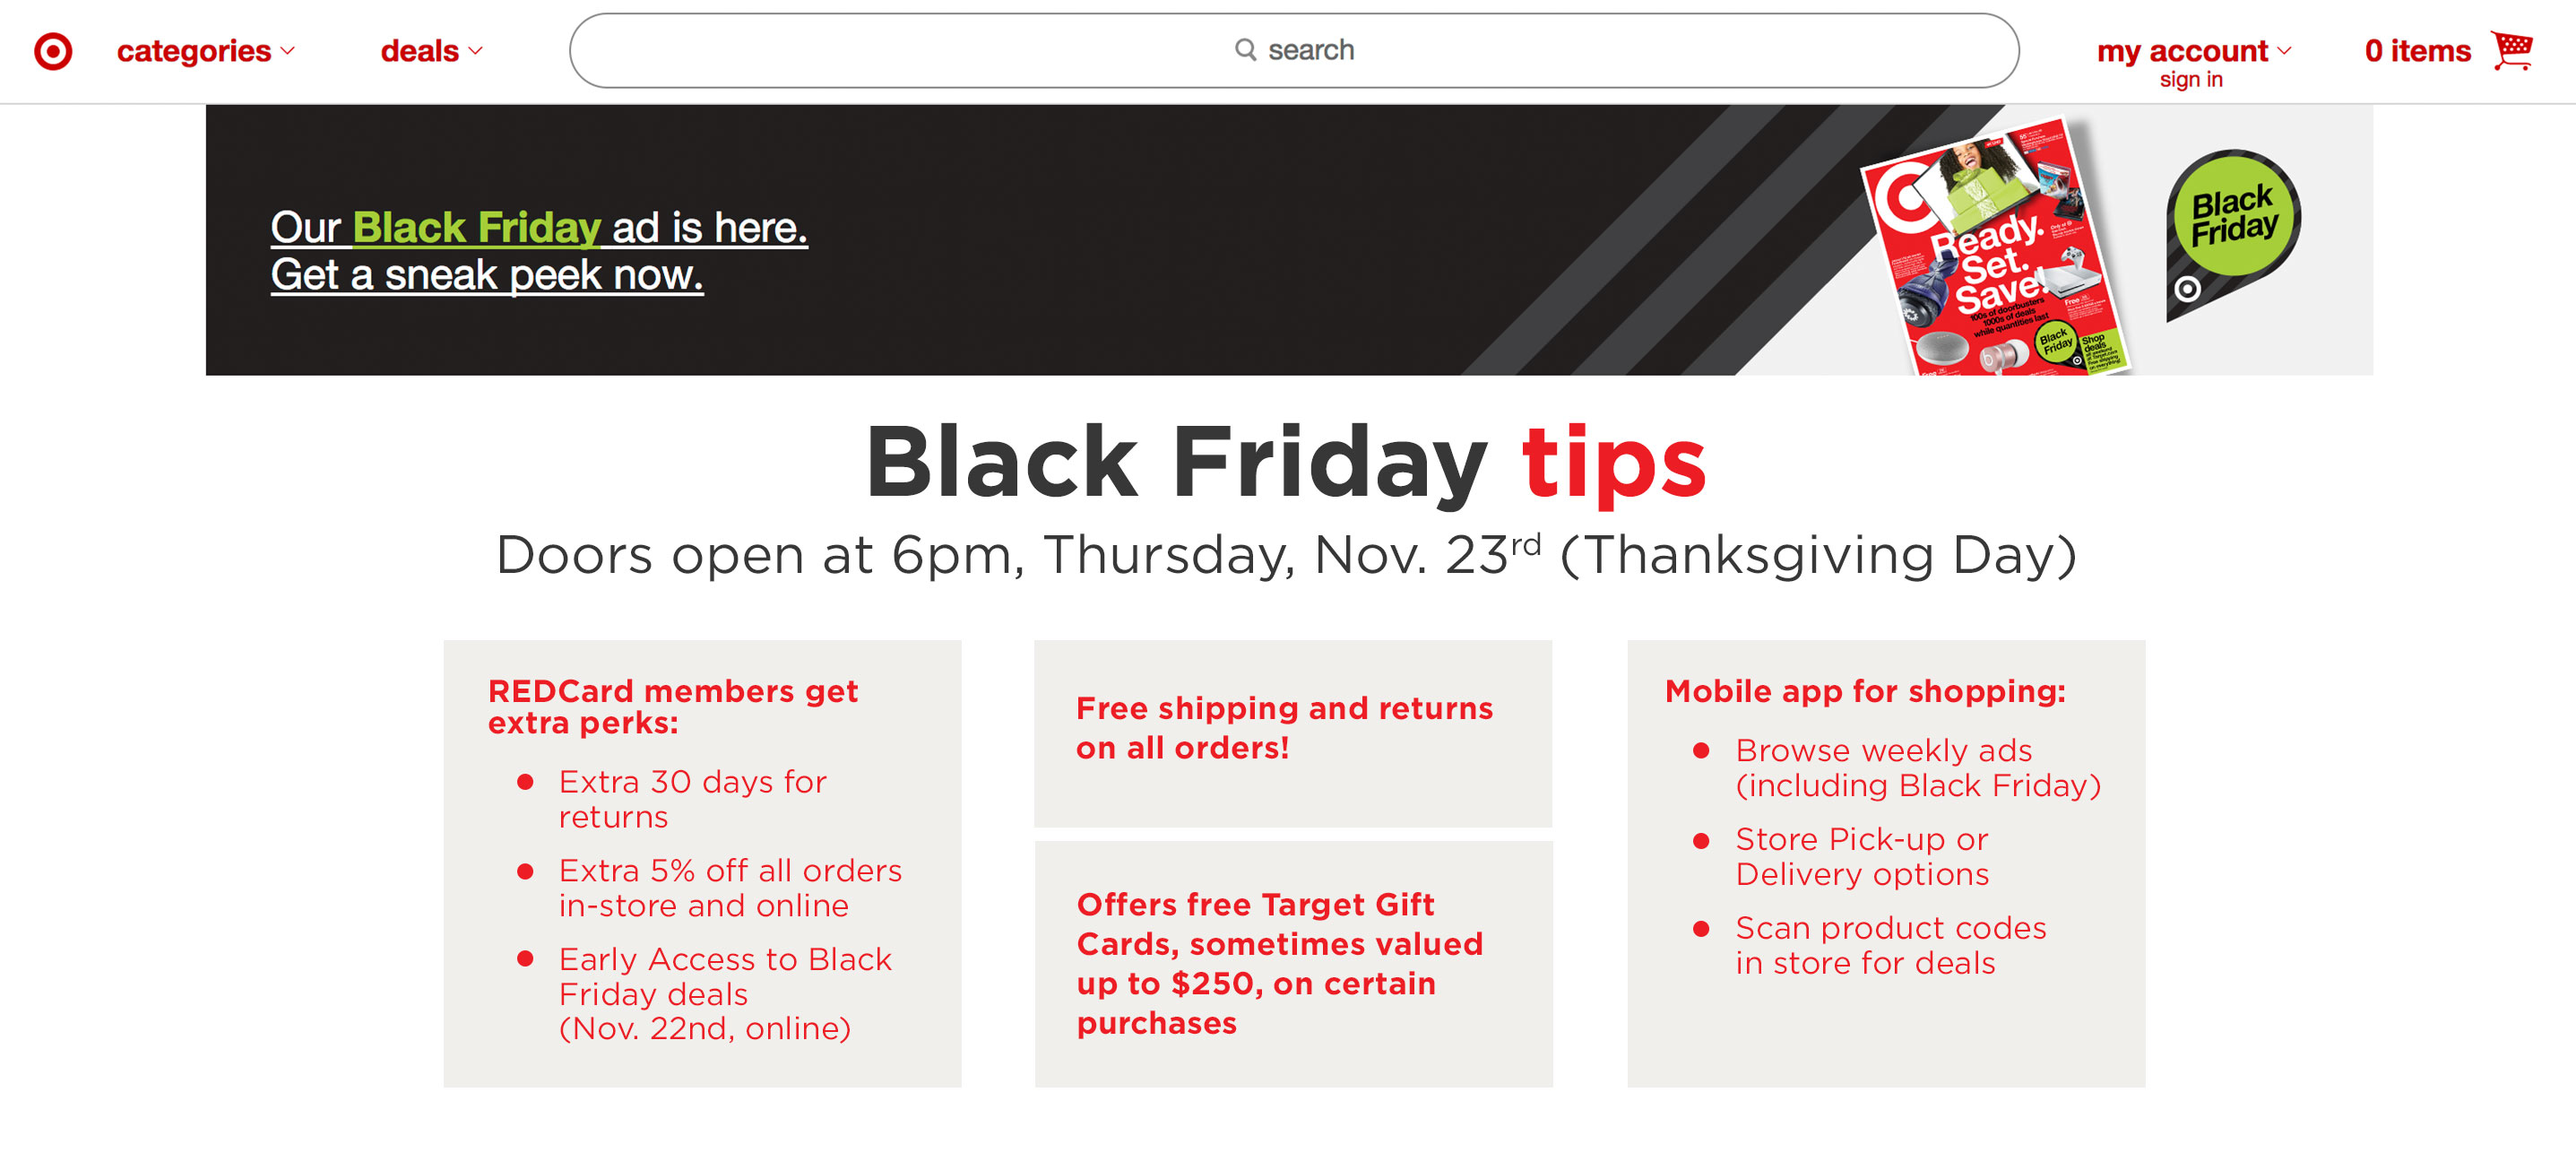 Doors open at 6pm, Thursday, Nov. 23rd (Thanksgiving Day) Free shipping and returns on all orders REDCard members get extra perks: Extra 30 days for returns Extra 5% off all orders in-store and online Early Access to Black Friday deals (Nov. 22nd, online) Offers free Target Gift Cards, sometimes valued up to $250, on certain purchases Black Friday ads are released online! Convenient mobile app for shopping: Browse weekly ads (including Black Friday) Store Pick-up or Delivery options Scan product codes in store for deals | blog.phmc.com